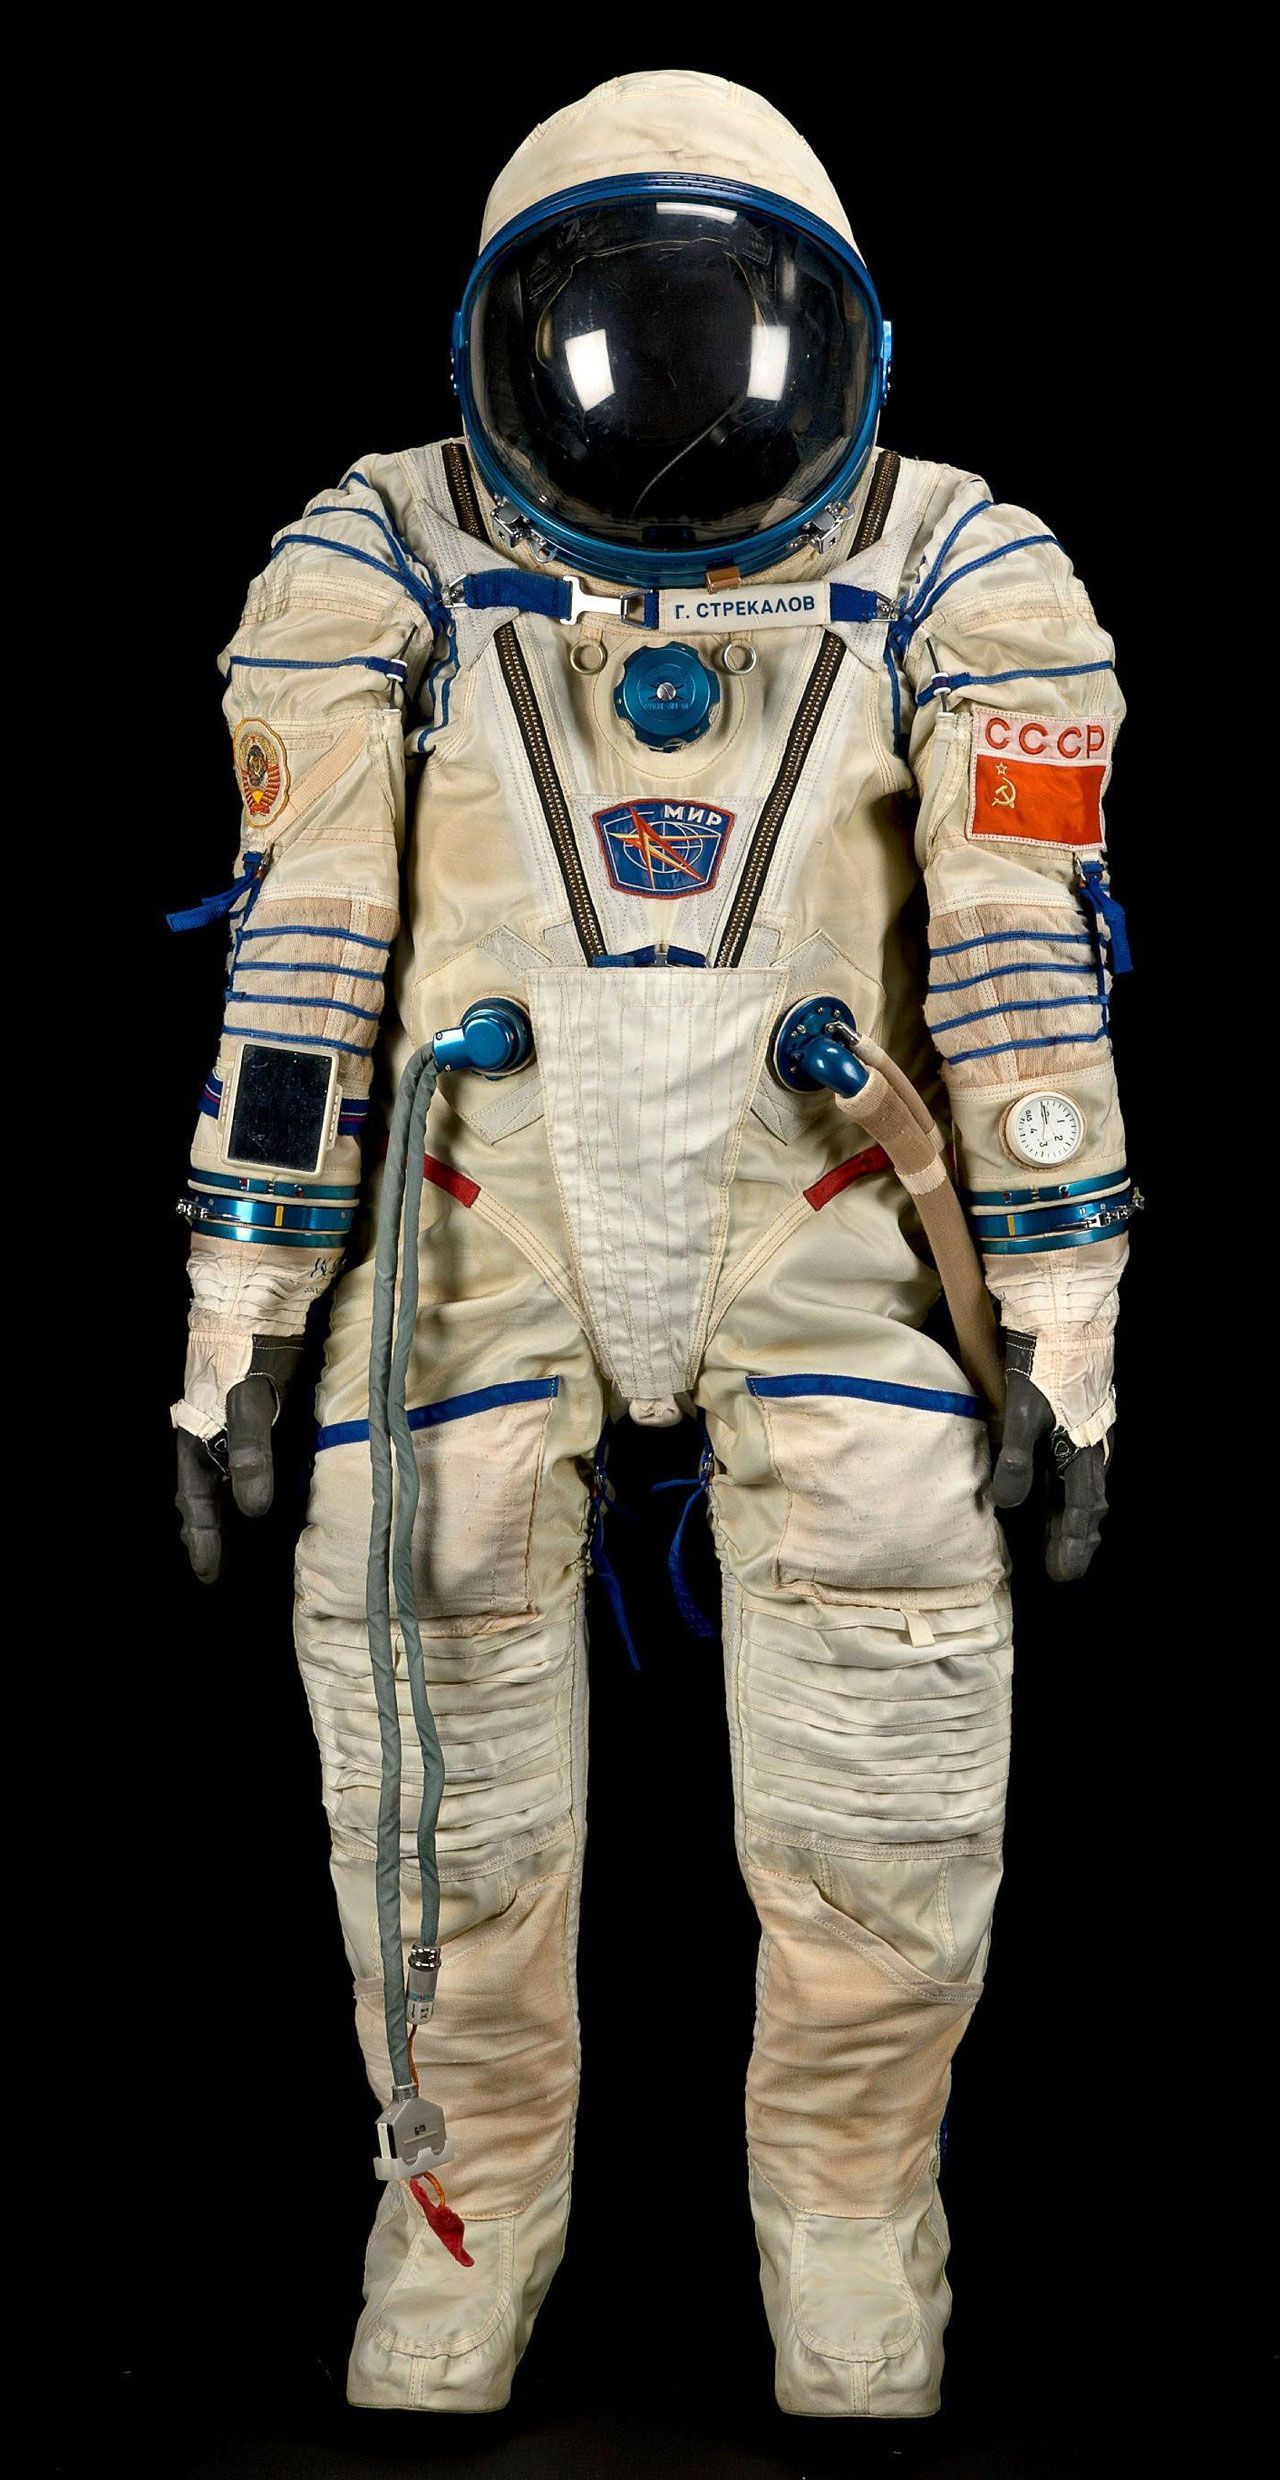 Sokol KV 2 Spacesuit Worn By Gennadi Strekalov During A 1990 Mission To The Mir Space Station